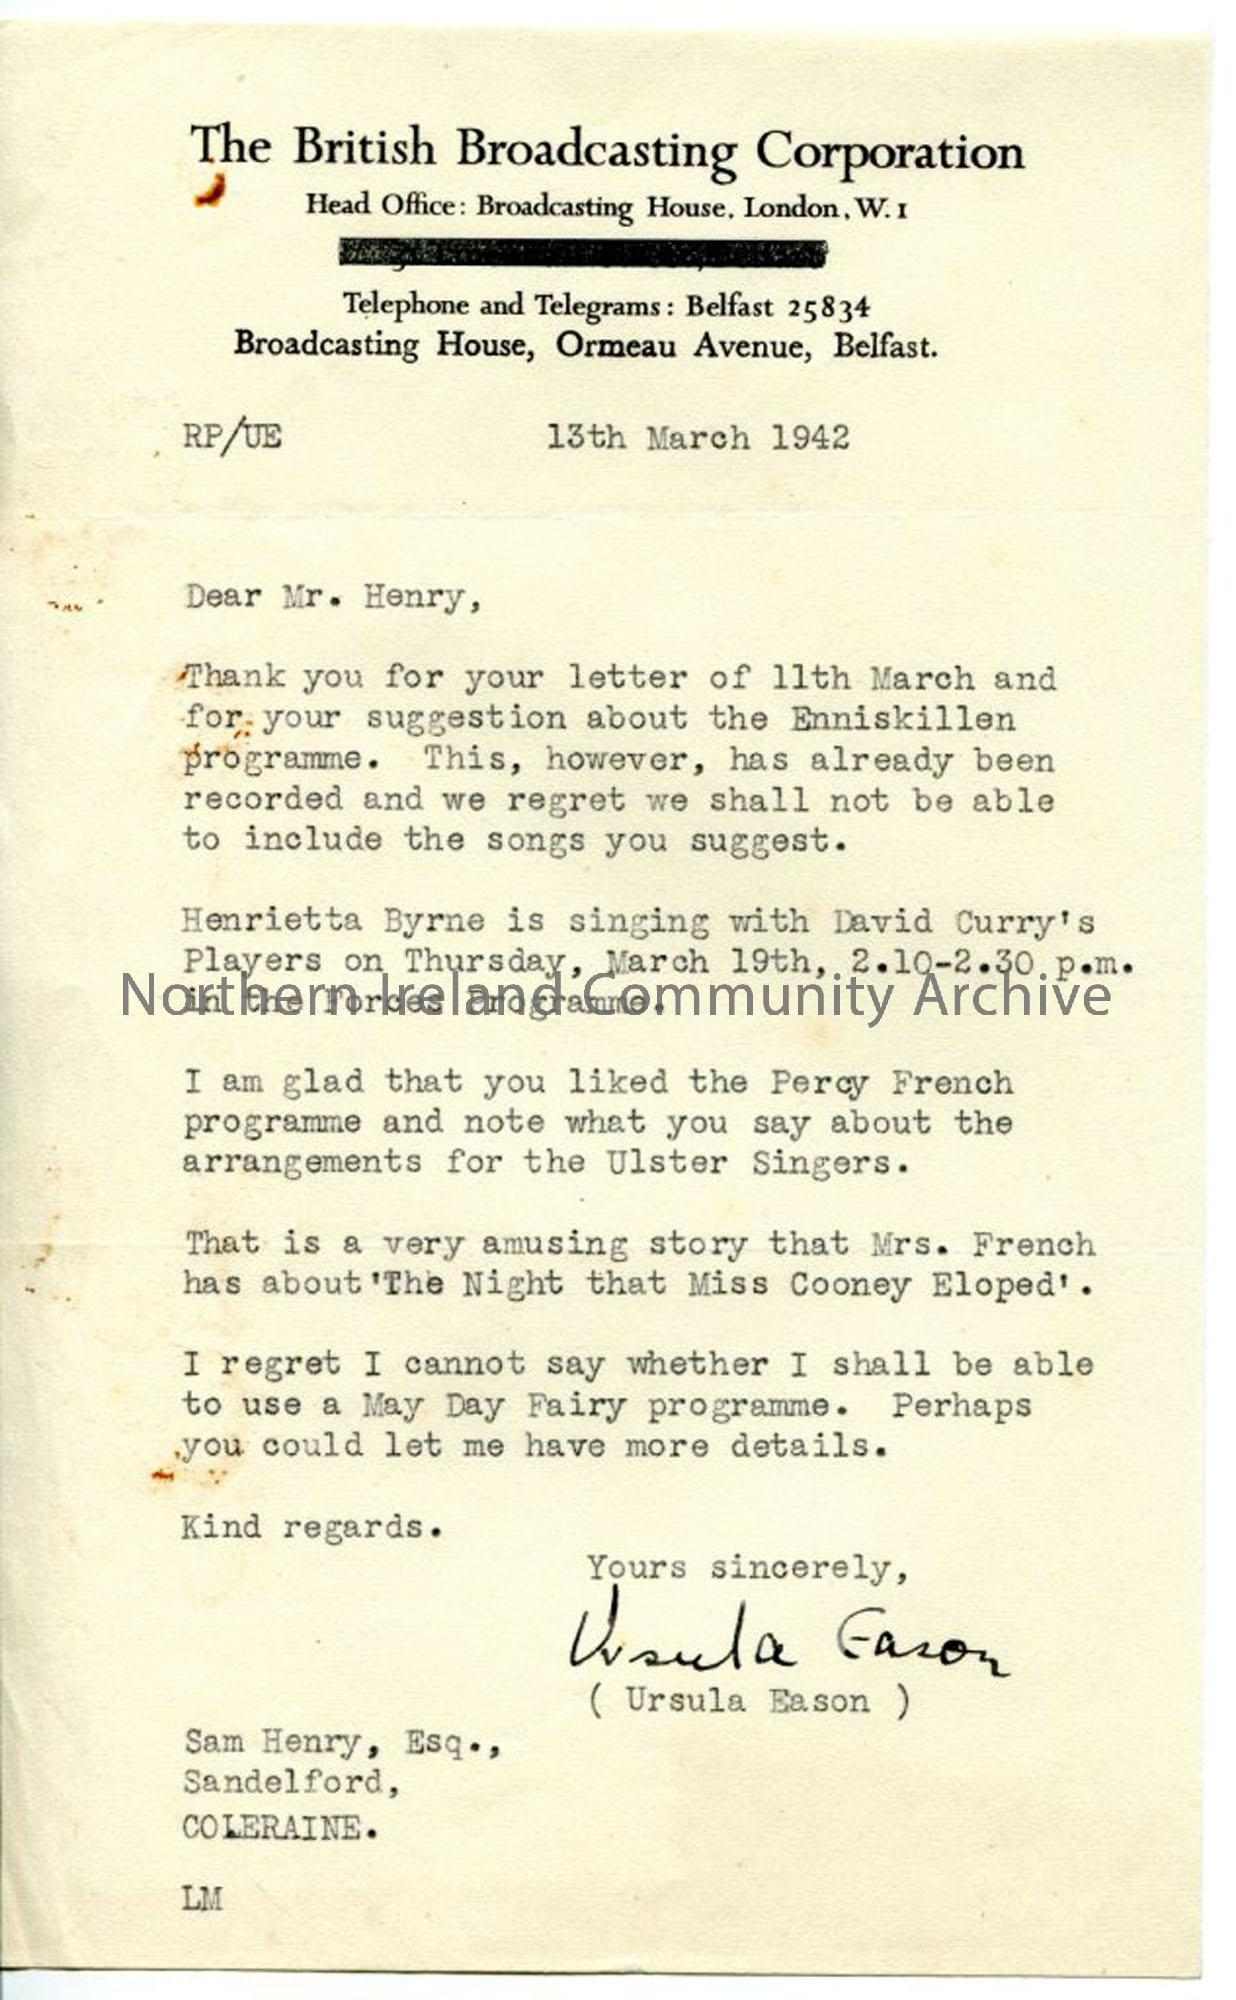 Letter from Ursula Eason, dated 13.3.1942